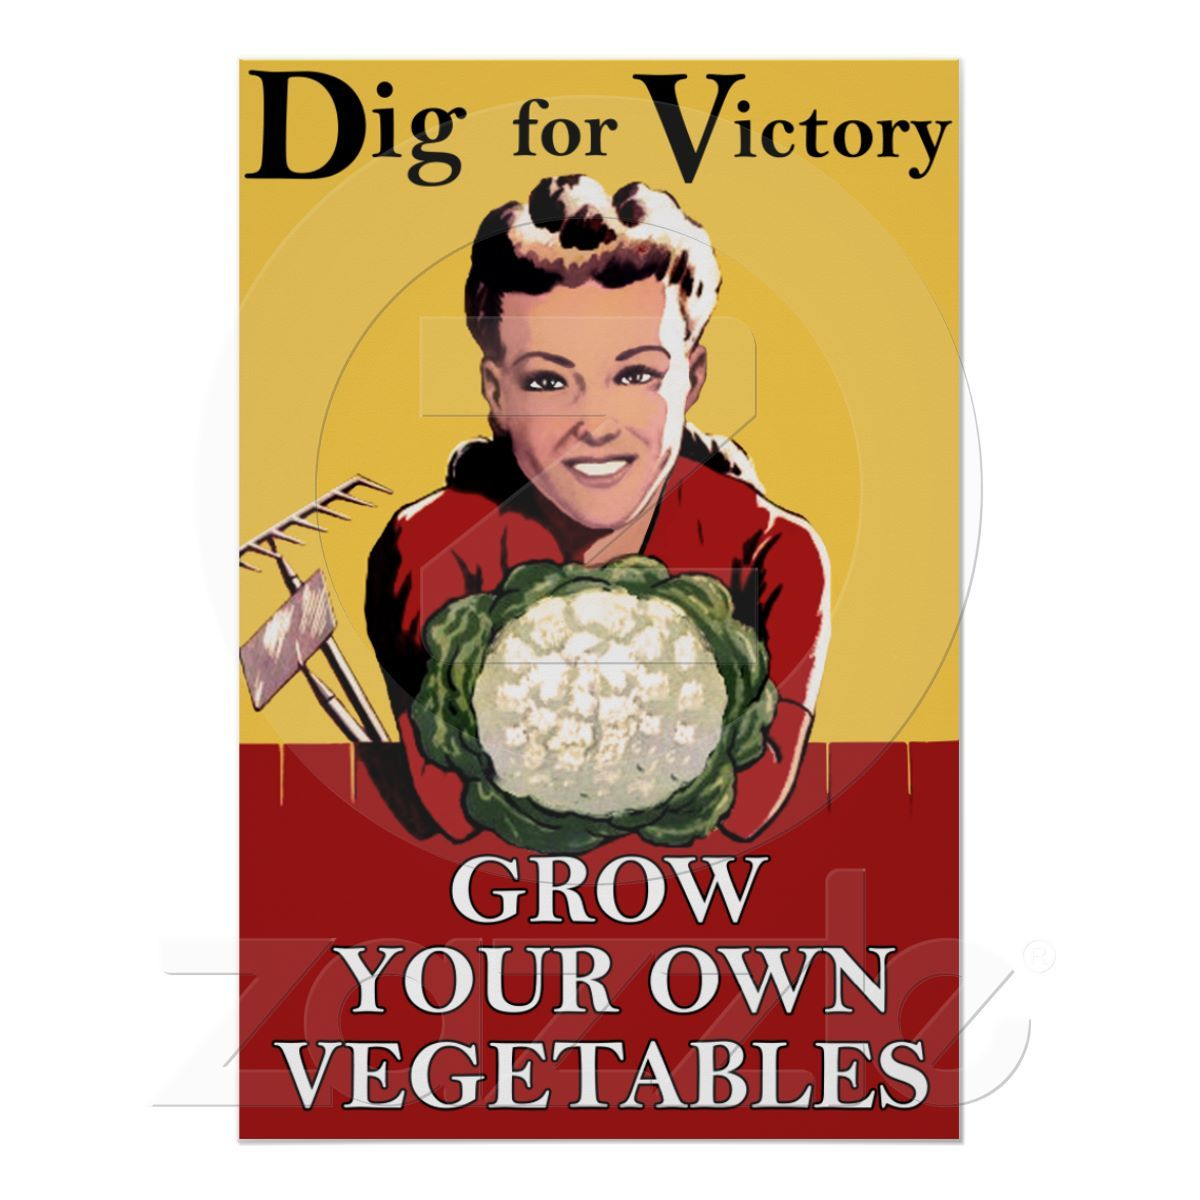 Vintage Dig for Victory Poster Dig for victory, Victory